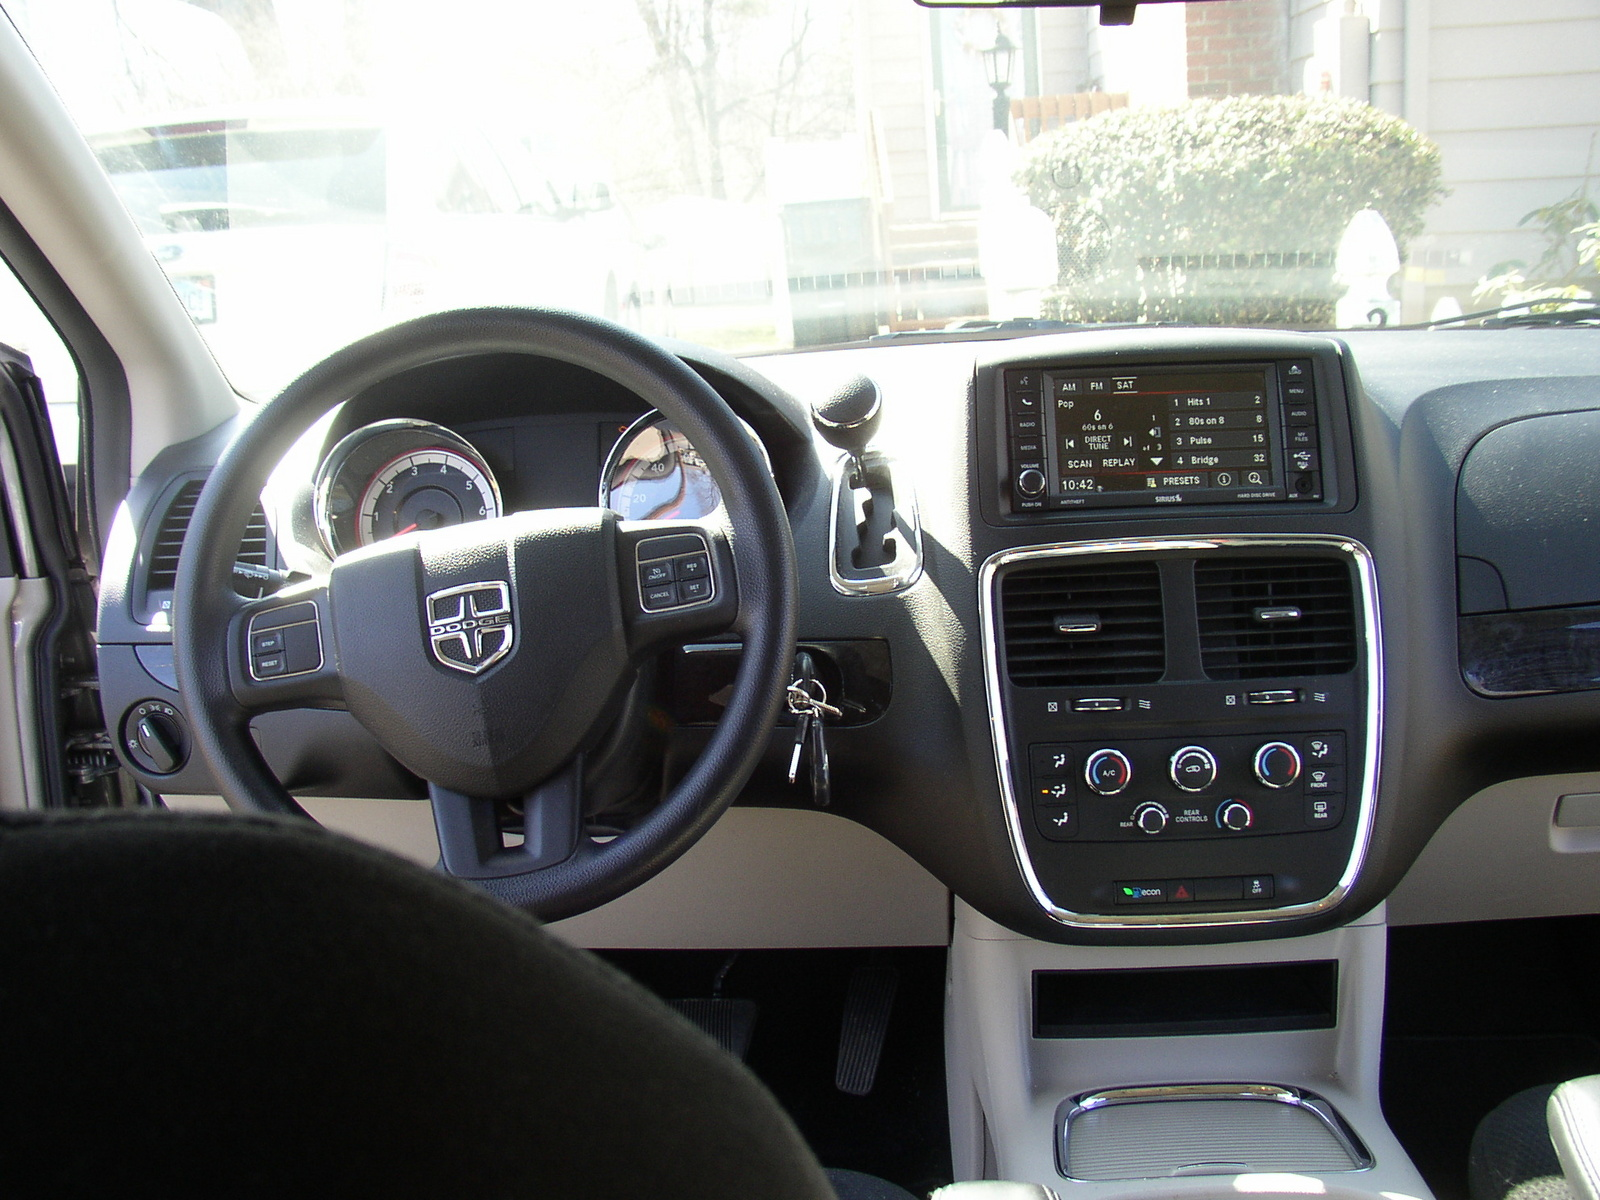 2014 Dodge Grand Caravan Pictures Cargurus